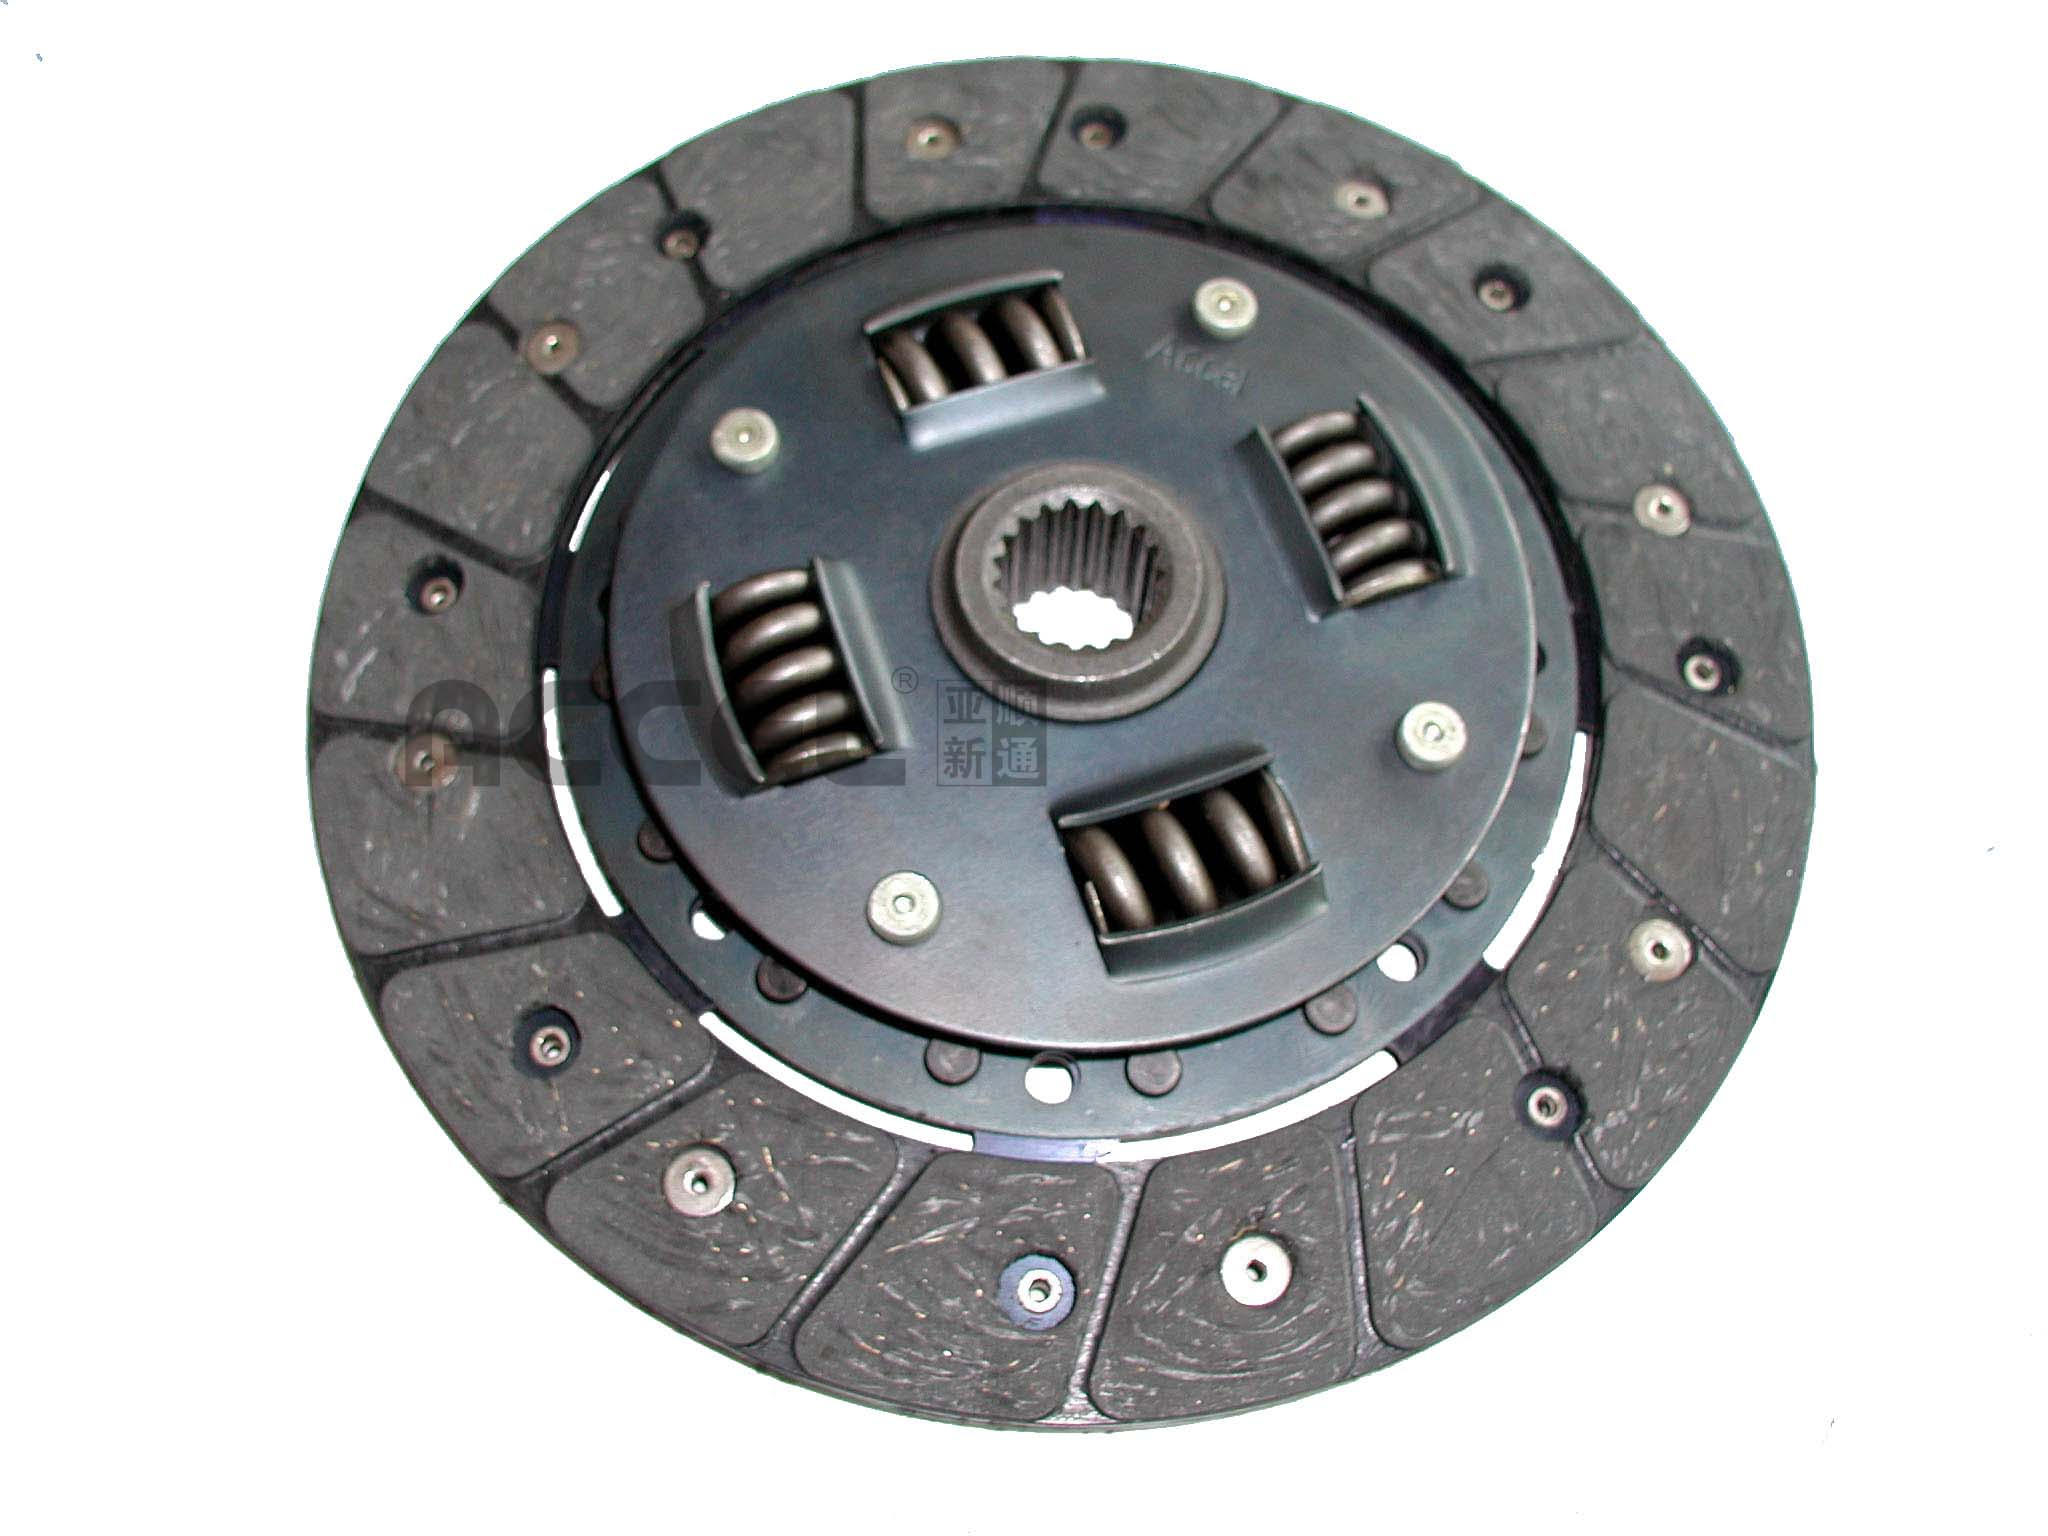 Clutch Disc/OE:SC210/190*132*19*20.1/AHC-006/HONDA/CL0318/22200-642-000